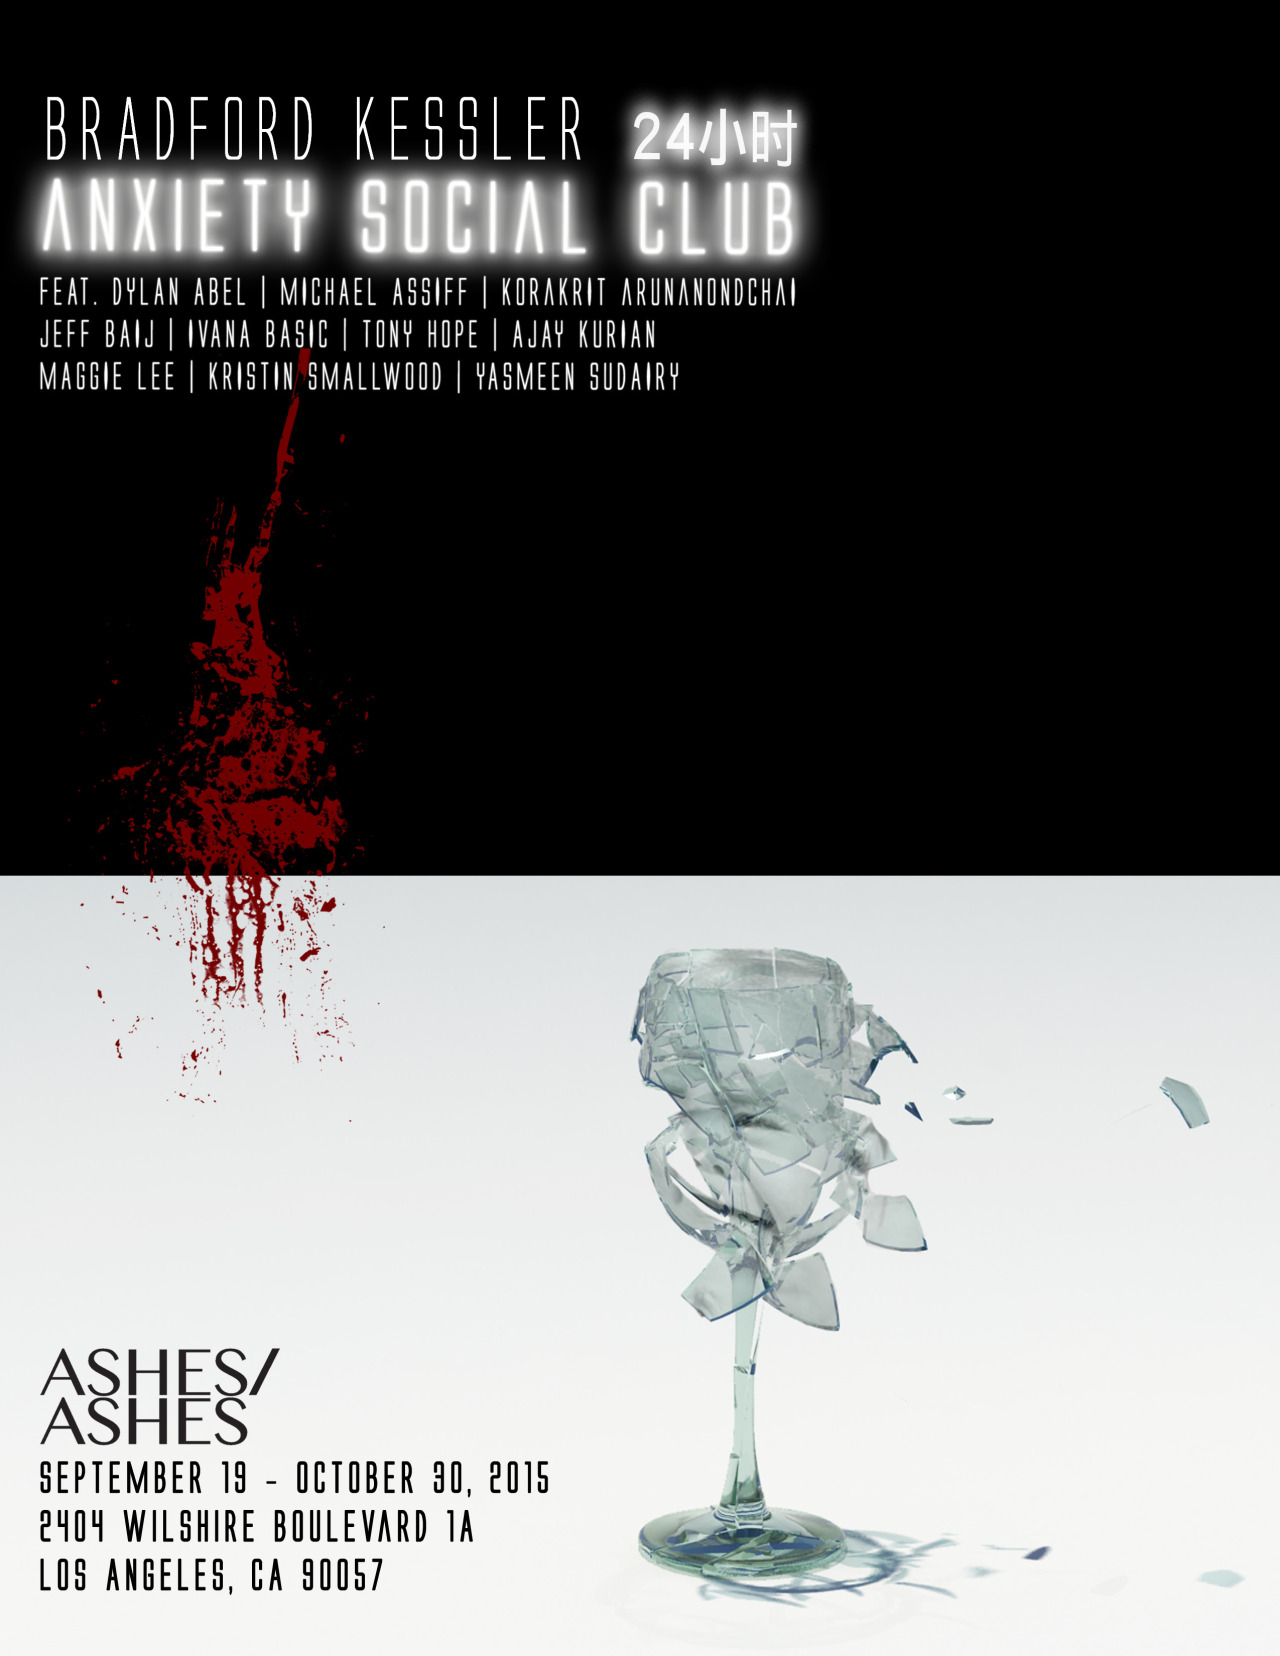 Bradford Kessler  (MFA AP13) presents a group exhibition  ANXIETY SOCIAL CLUB  at  ASHES/ASHES  gallery featuring a group of work by artists including  Yasmeen Sudairy  (MFA AP13). Exhibition opens September 19th from 7 - 9pm.